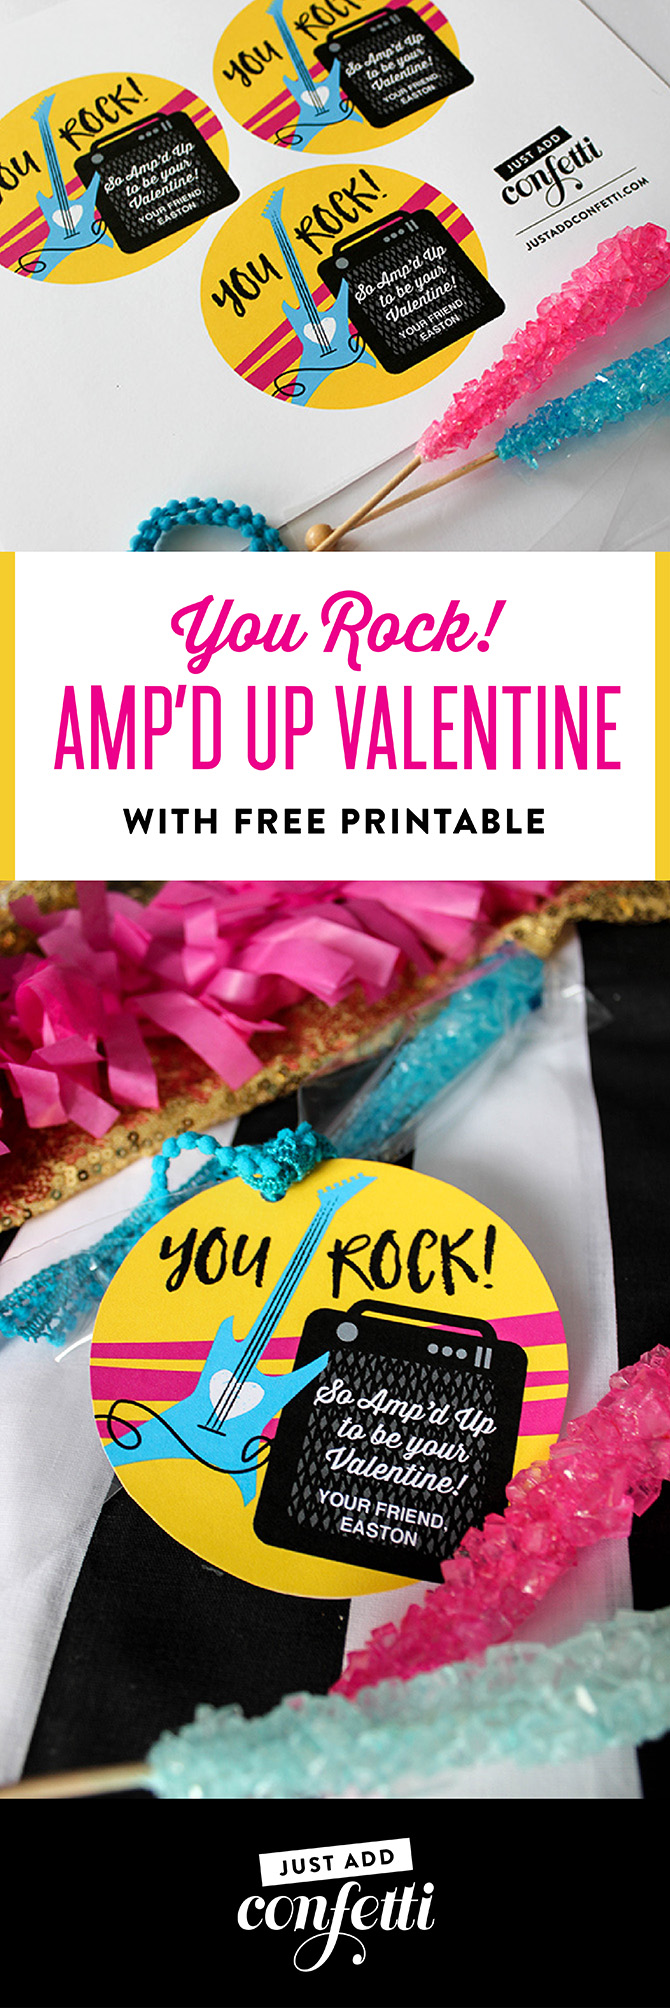 You Rock! Amp'd Up Valentine, You Rock, Amp'd Up, valentine, valentine printable, classroom valentine, valentine free printable, free printable, kids valentine, school valentine, easy valentine, Just Add Confetti, Just Add Confetti printables, rock star valentine, guitar valentine, amp valentine,